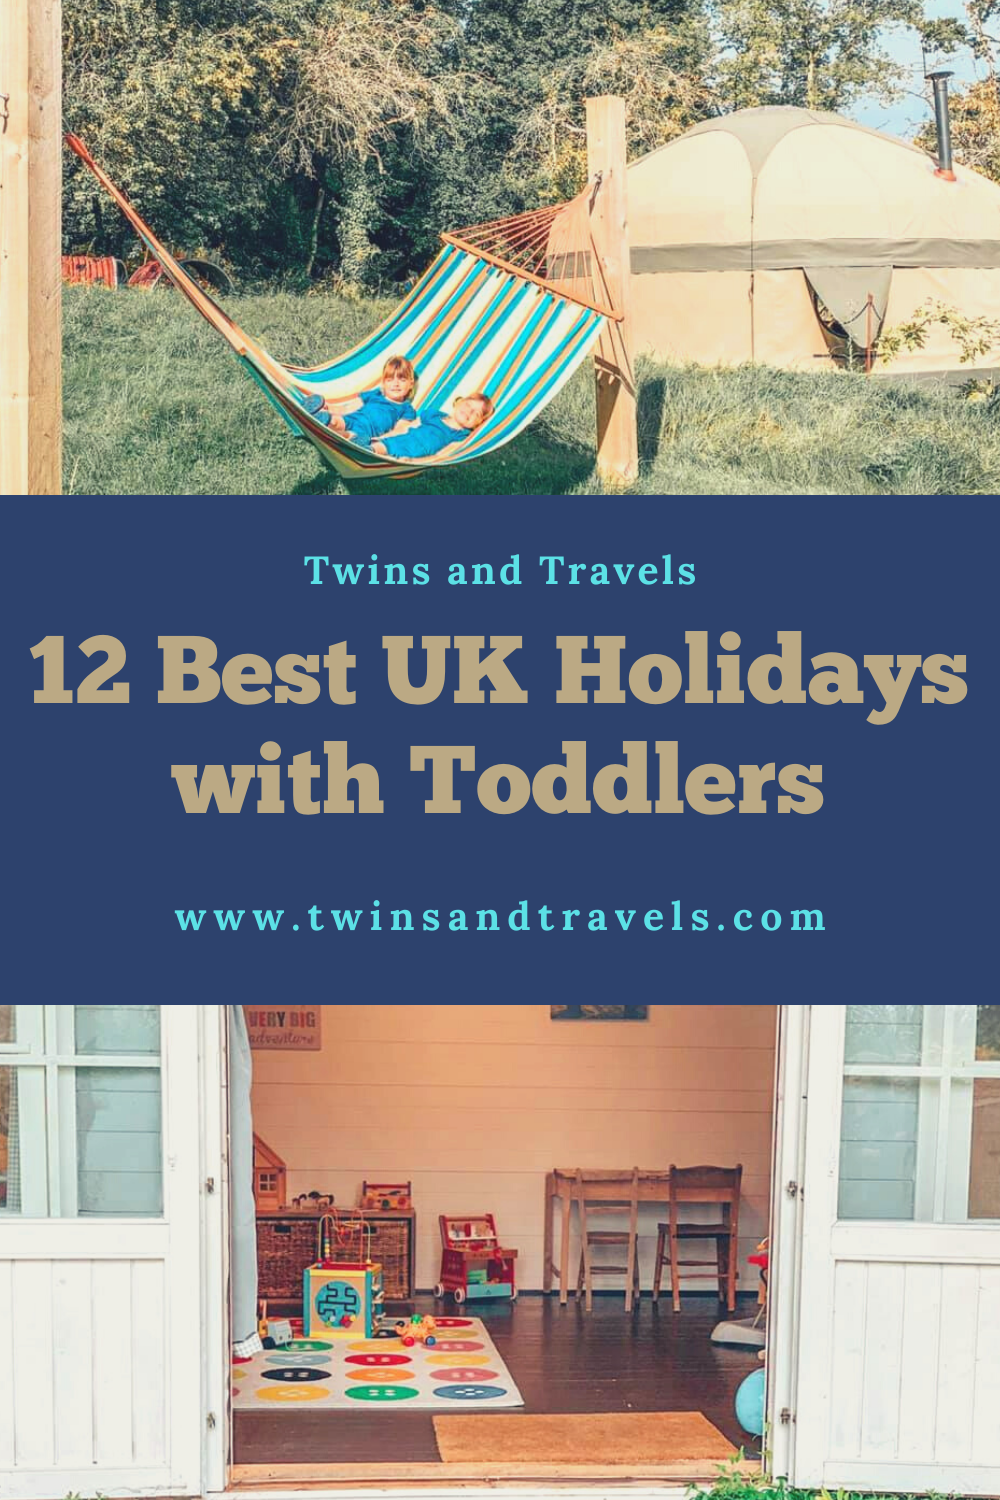 12 Best UK Holidays with Toddlers